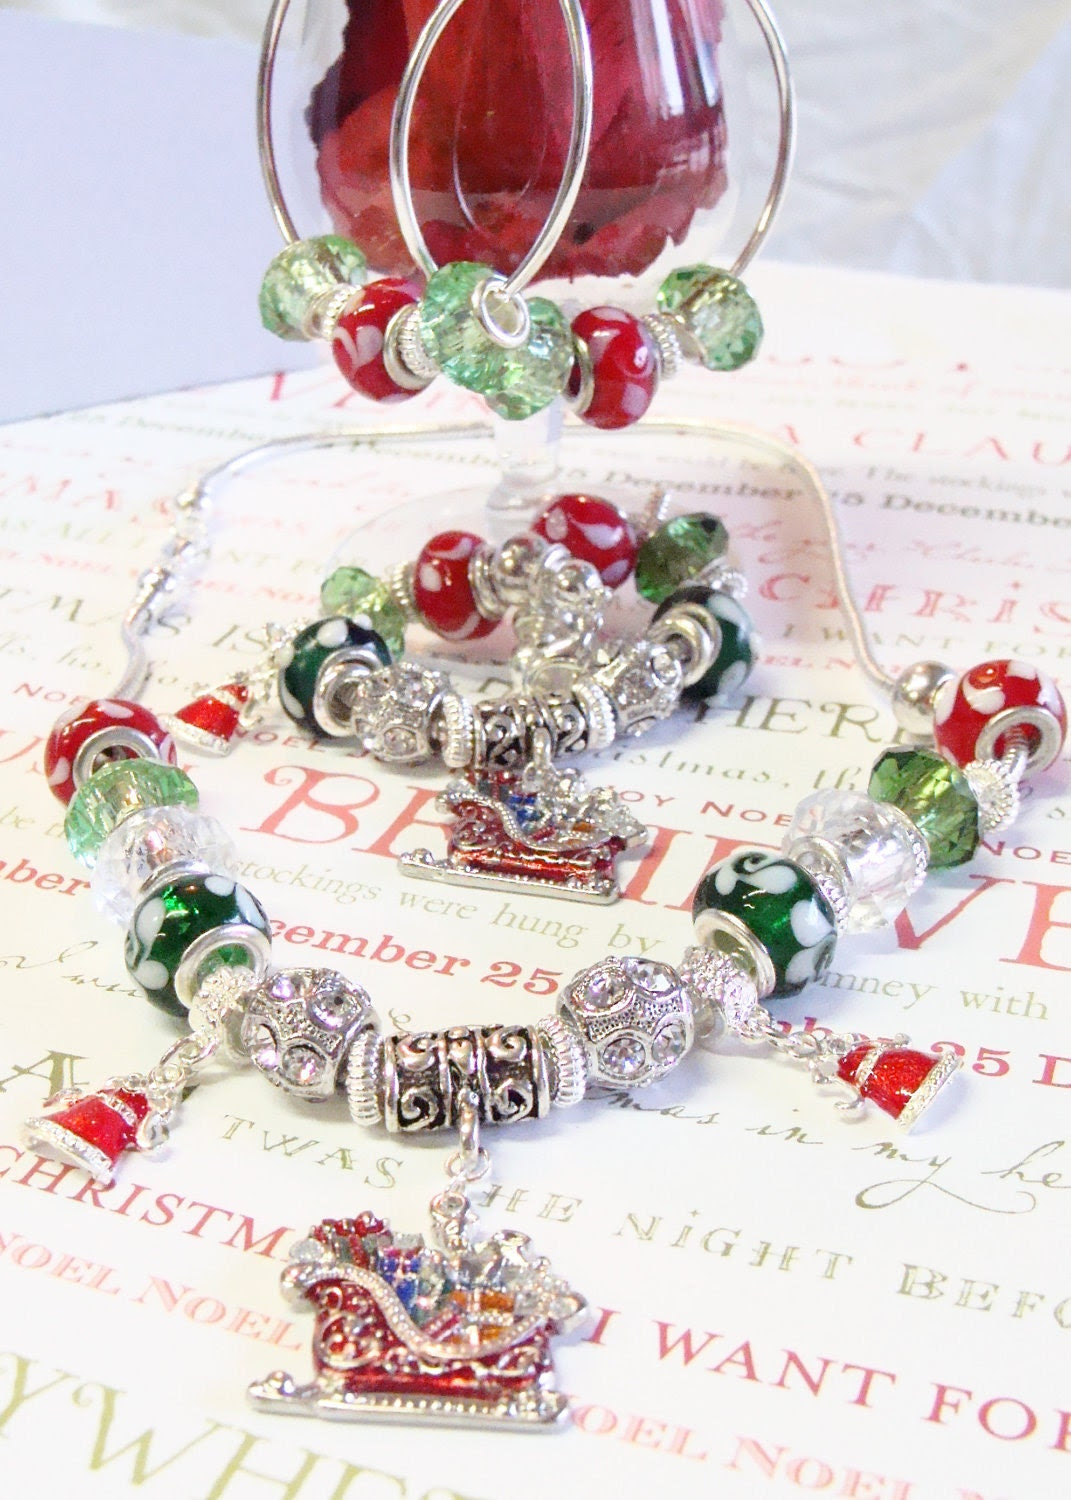 Christmas Red and Green Pandora Style Necklace with Crystals and Rhinestones